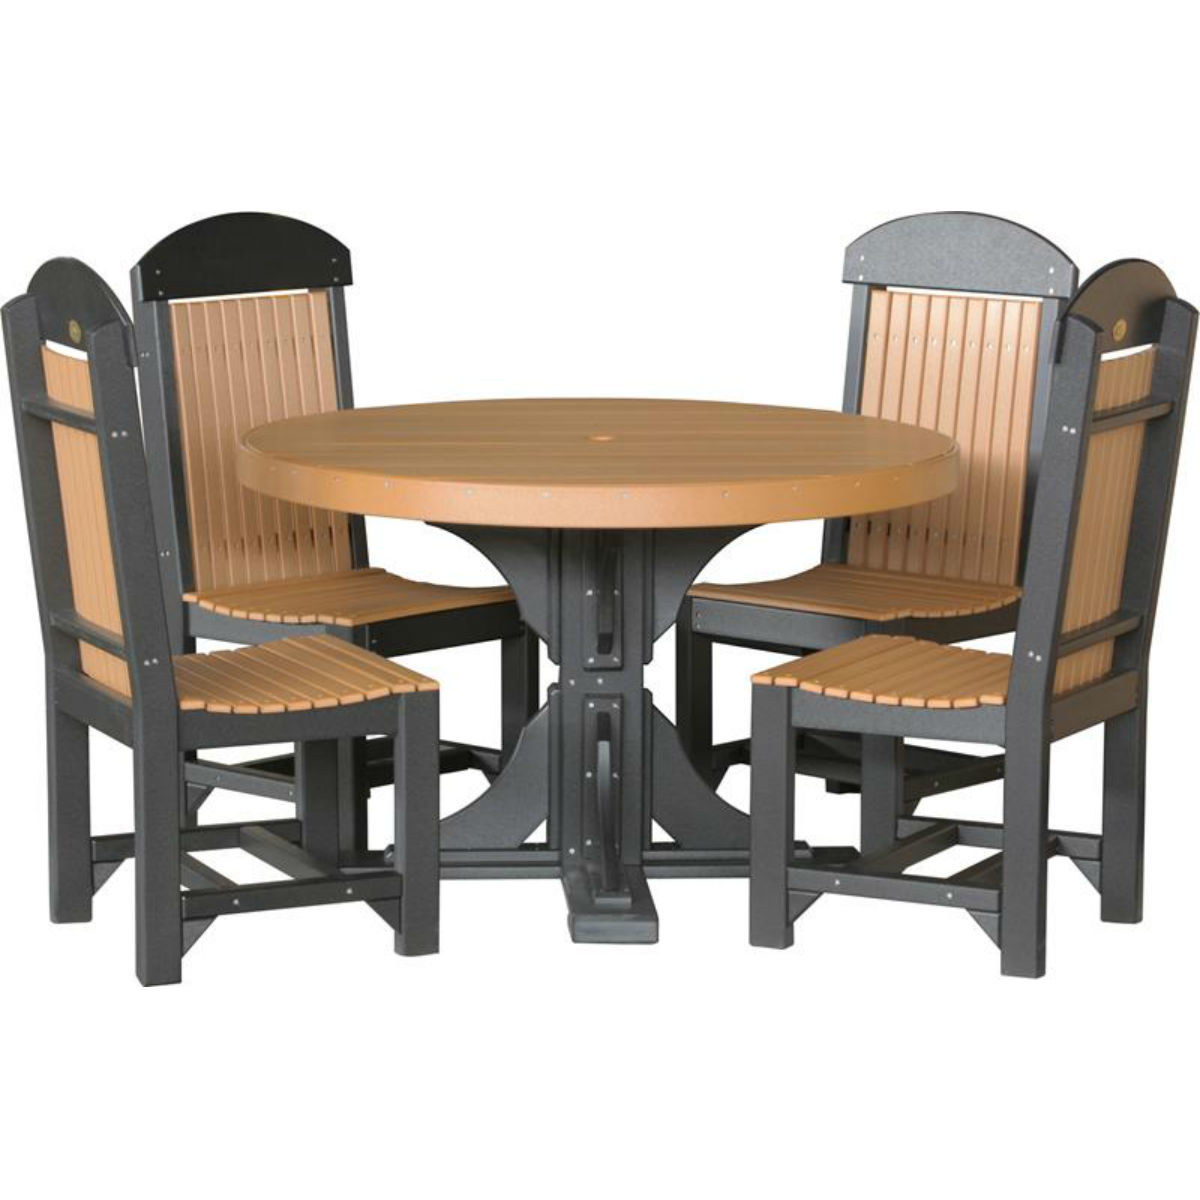 Round 5-Piece Dining Set